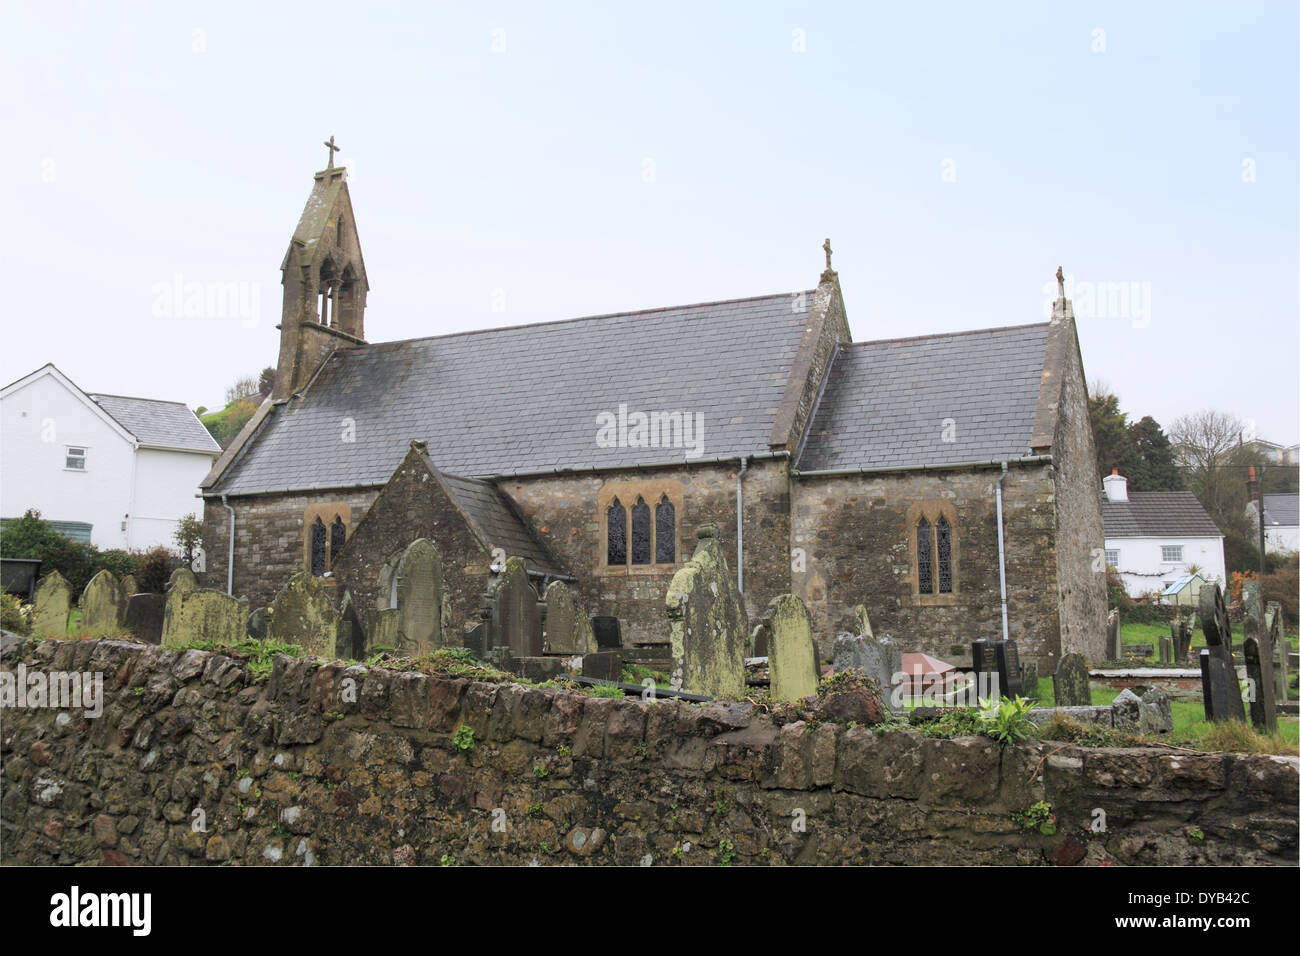 St Cattwg's church, Port Eynon, Gower Peninsula, Wales, Great Britain, United Kingdom, UK, Europe - Stock Image